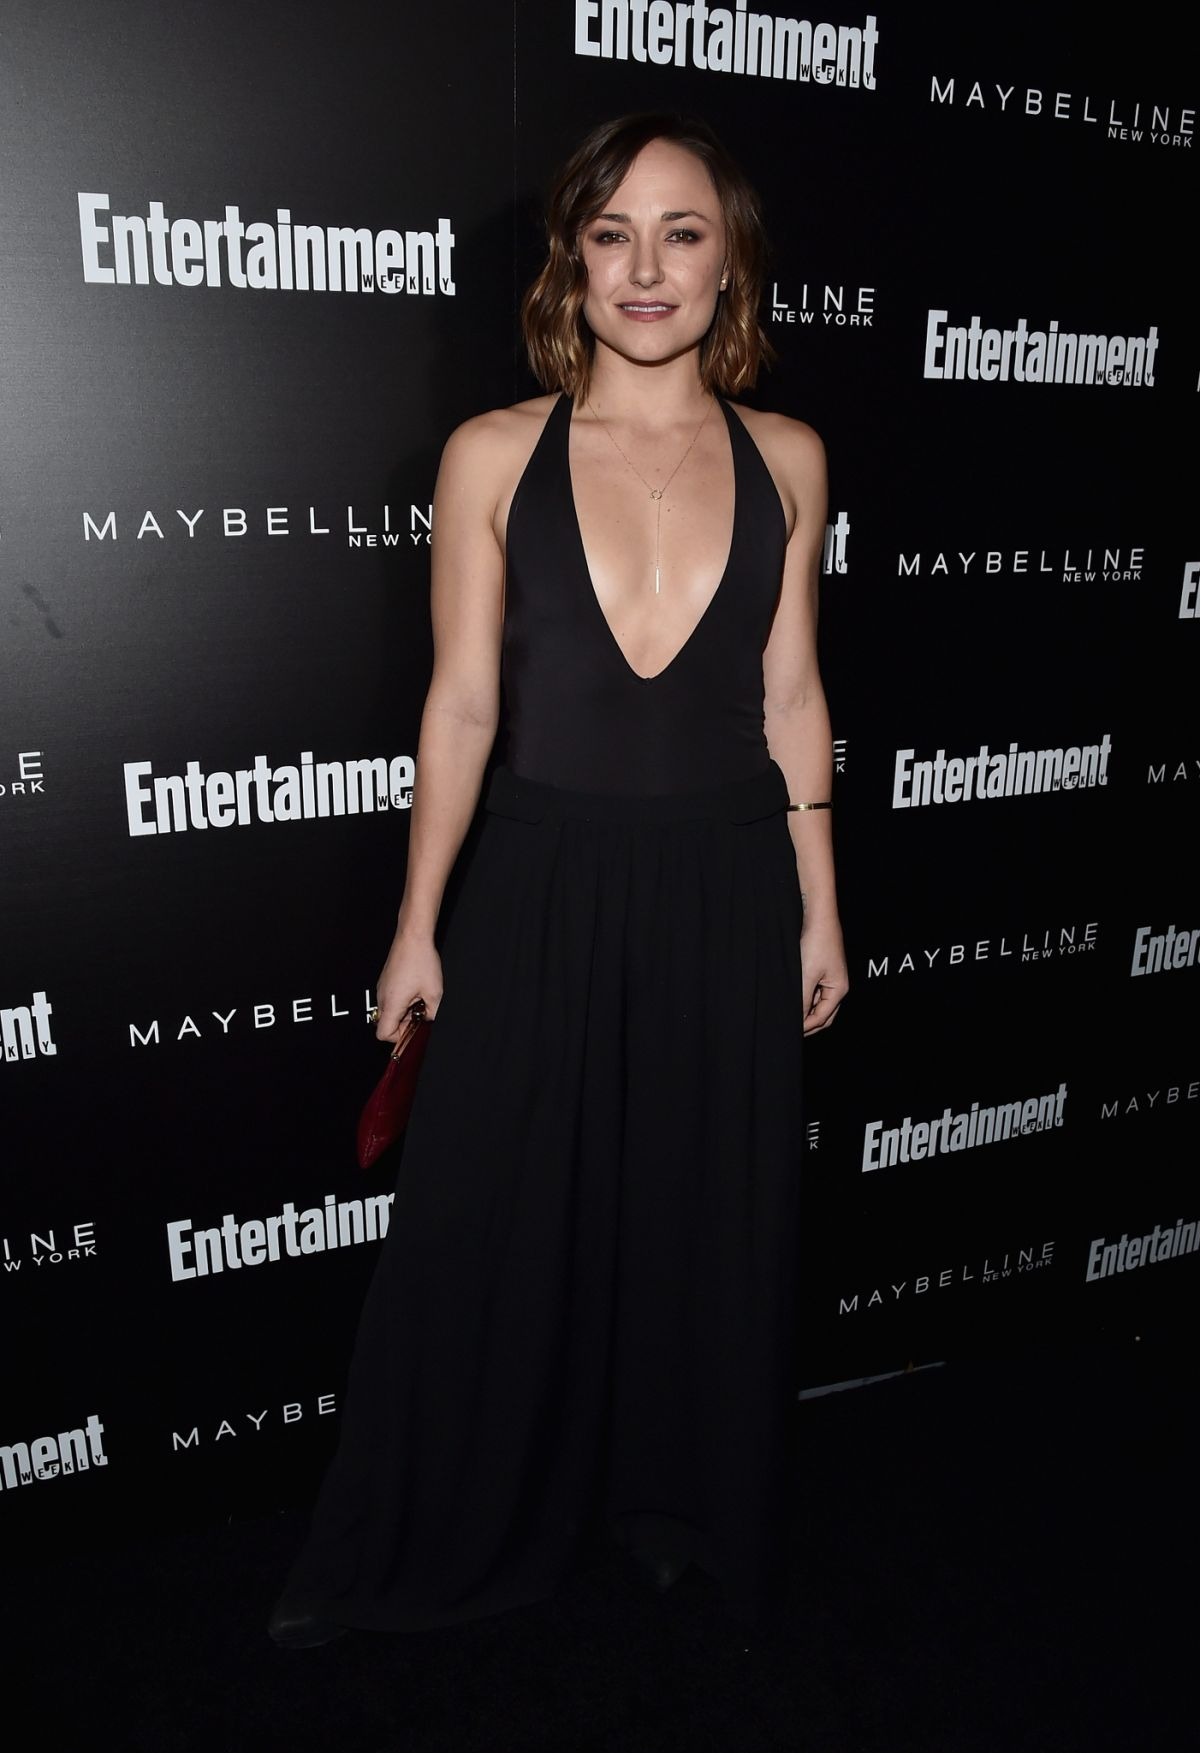 BRIANA EVIGAN at EW Celebration Honoring the Screen Actors Guild Awards Nominees in Los Angeles 01/29/2016